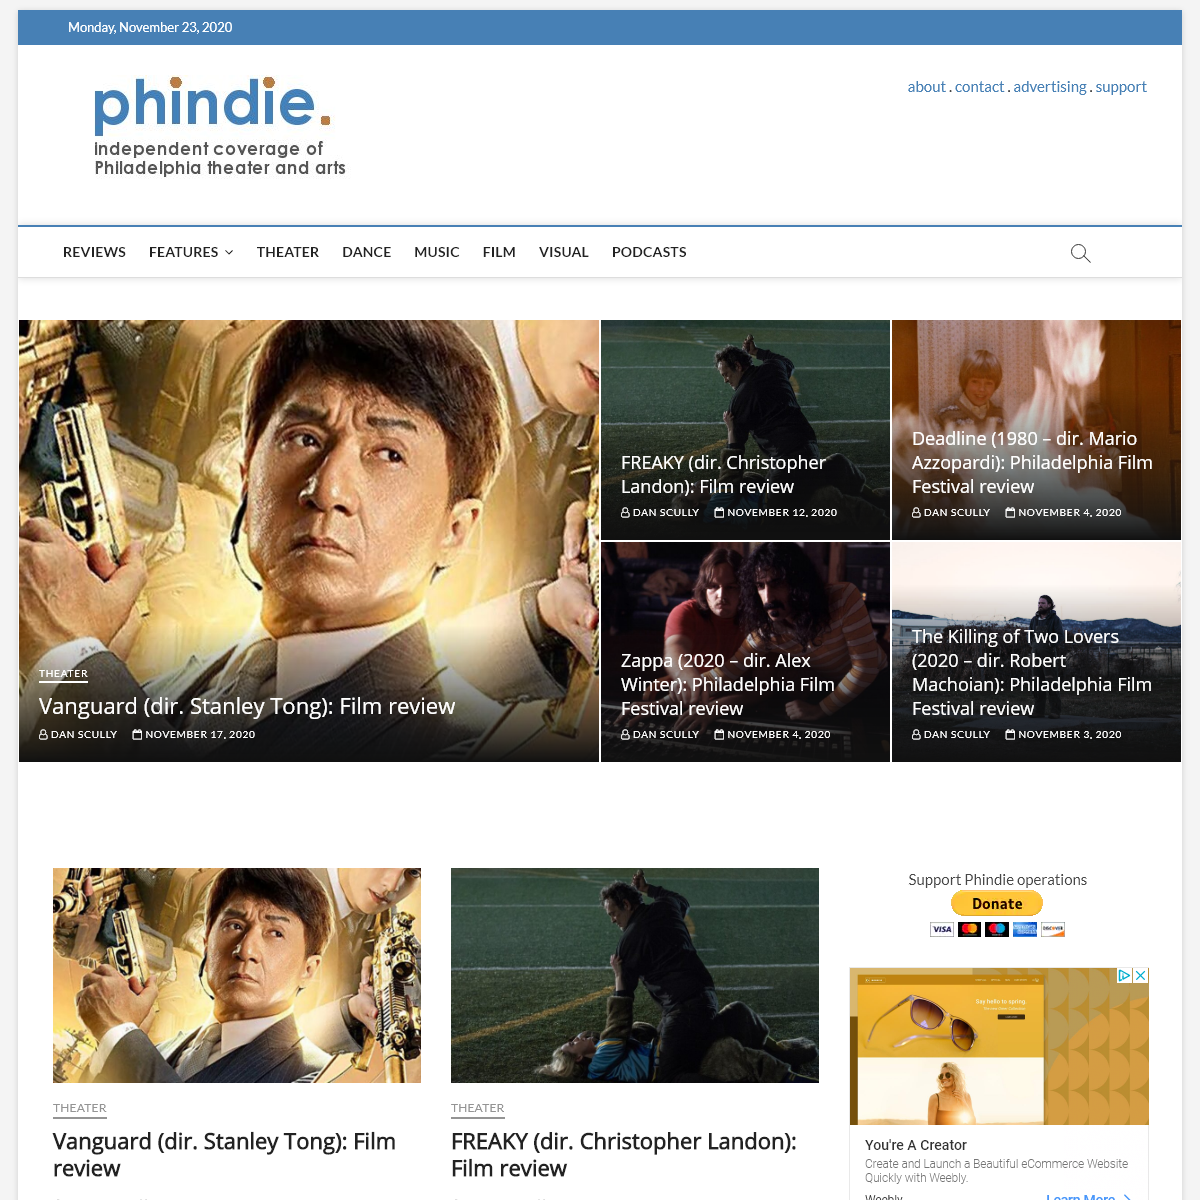 phindie - An independent take on Philadelphia theater and arts